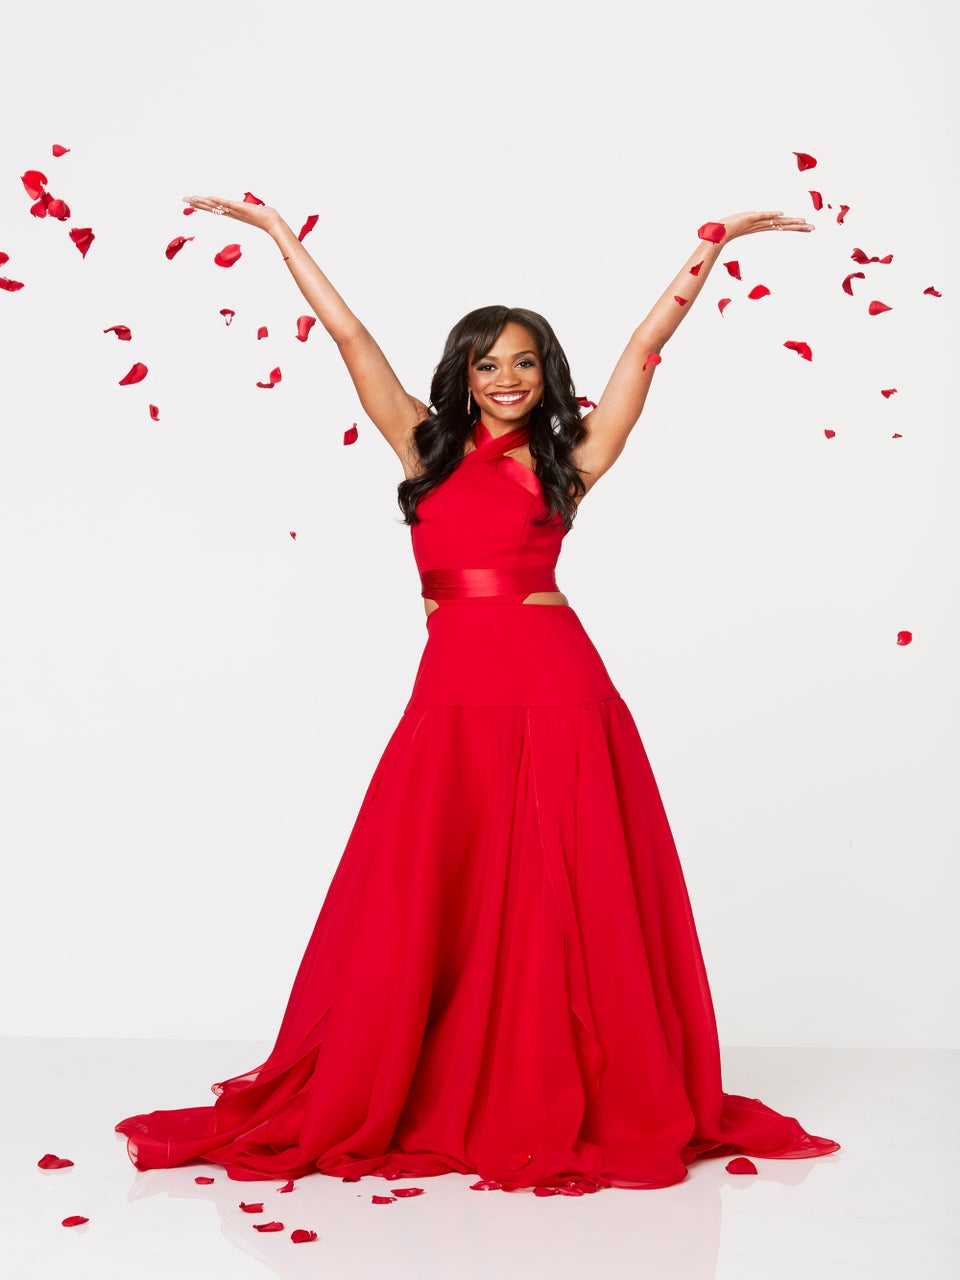 'Bachelorette' Star Rachel Lindsay: 'My Journey For Love Isn't Different Just Because I Am Black'